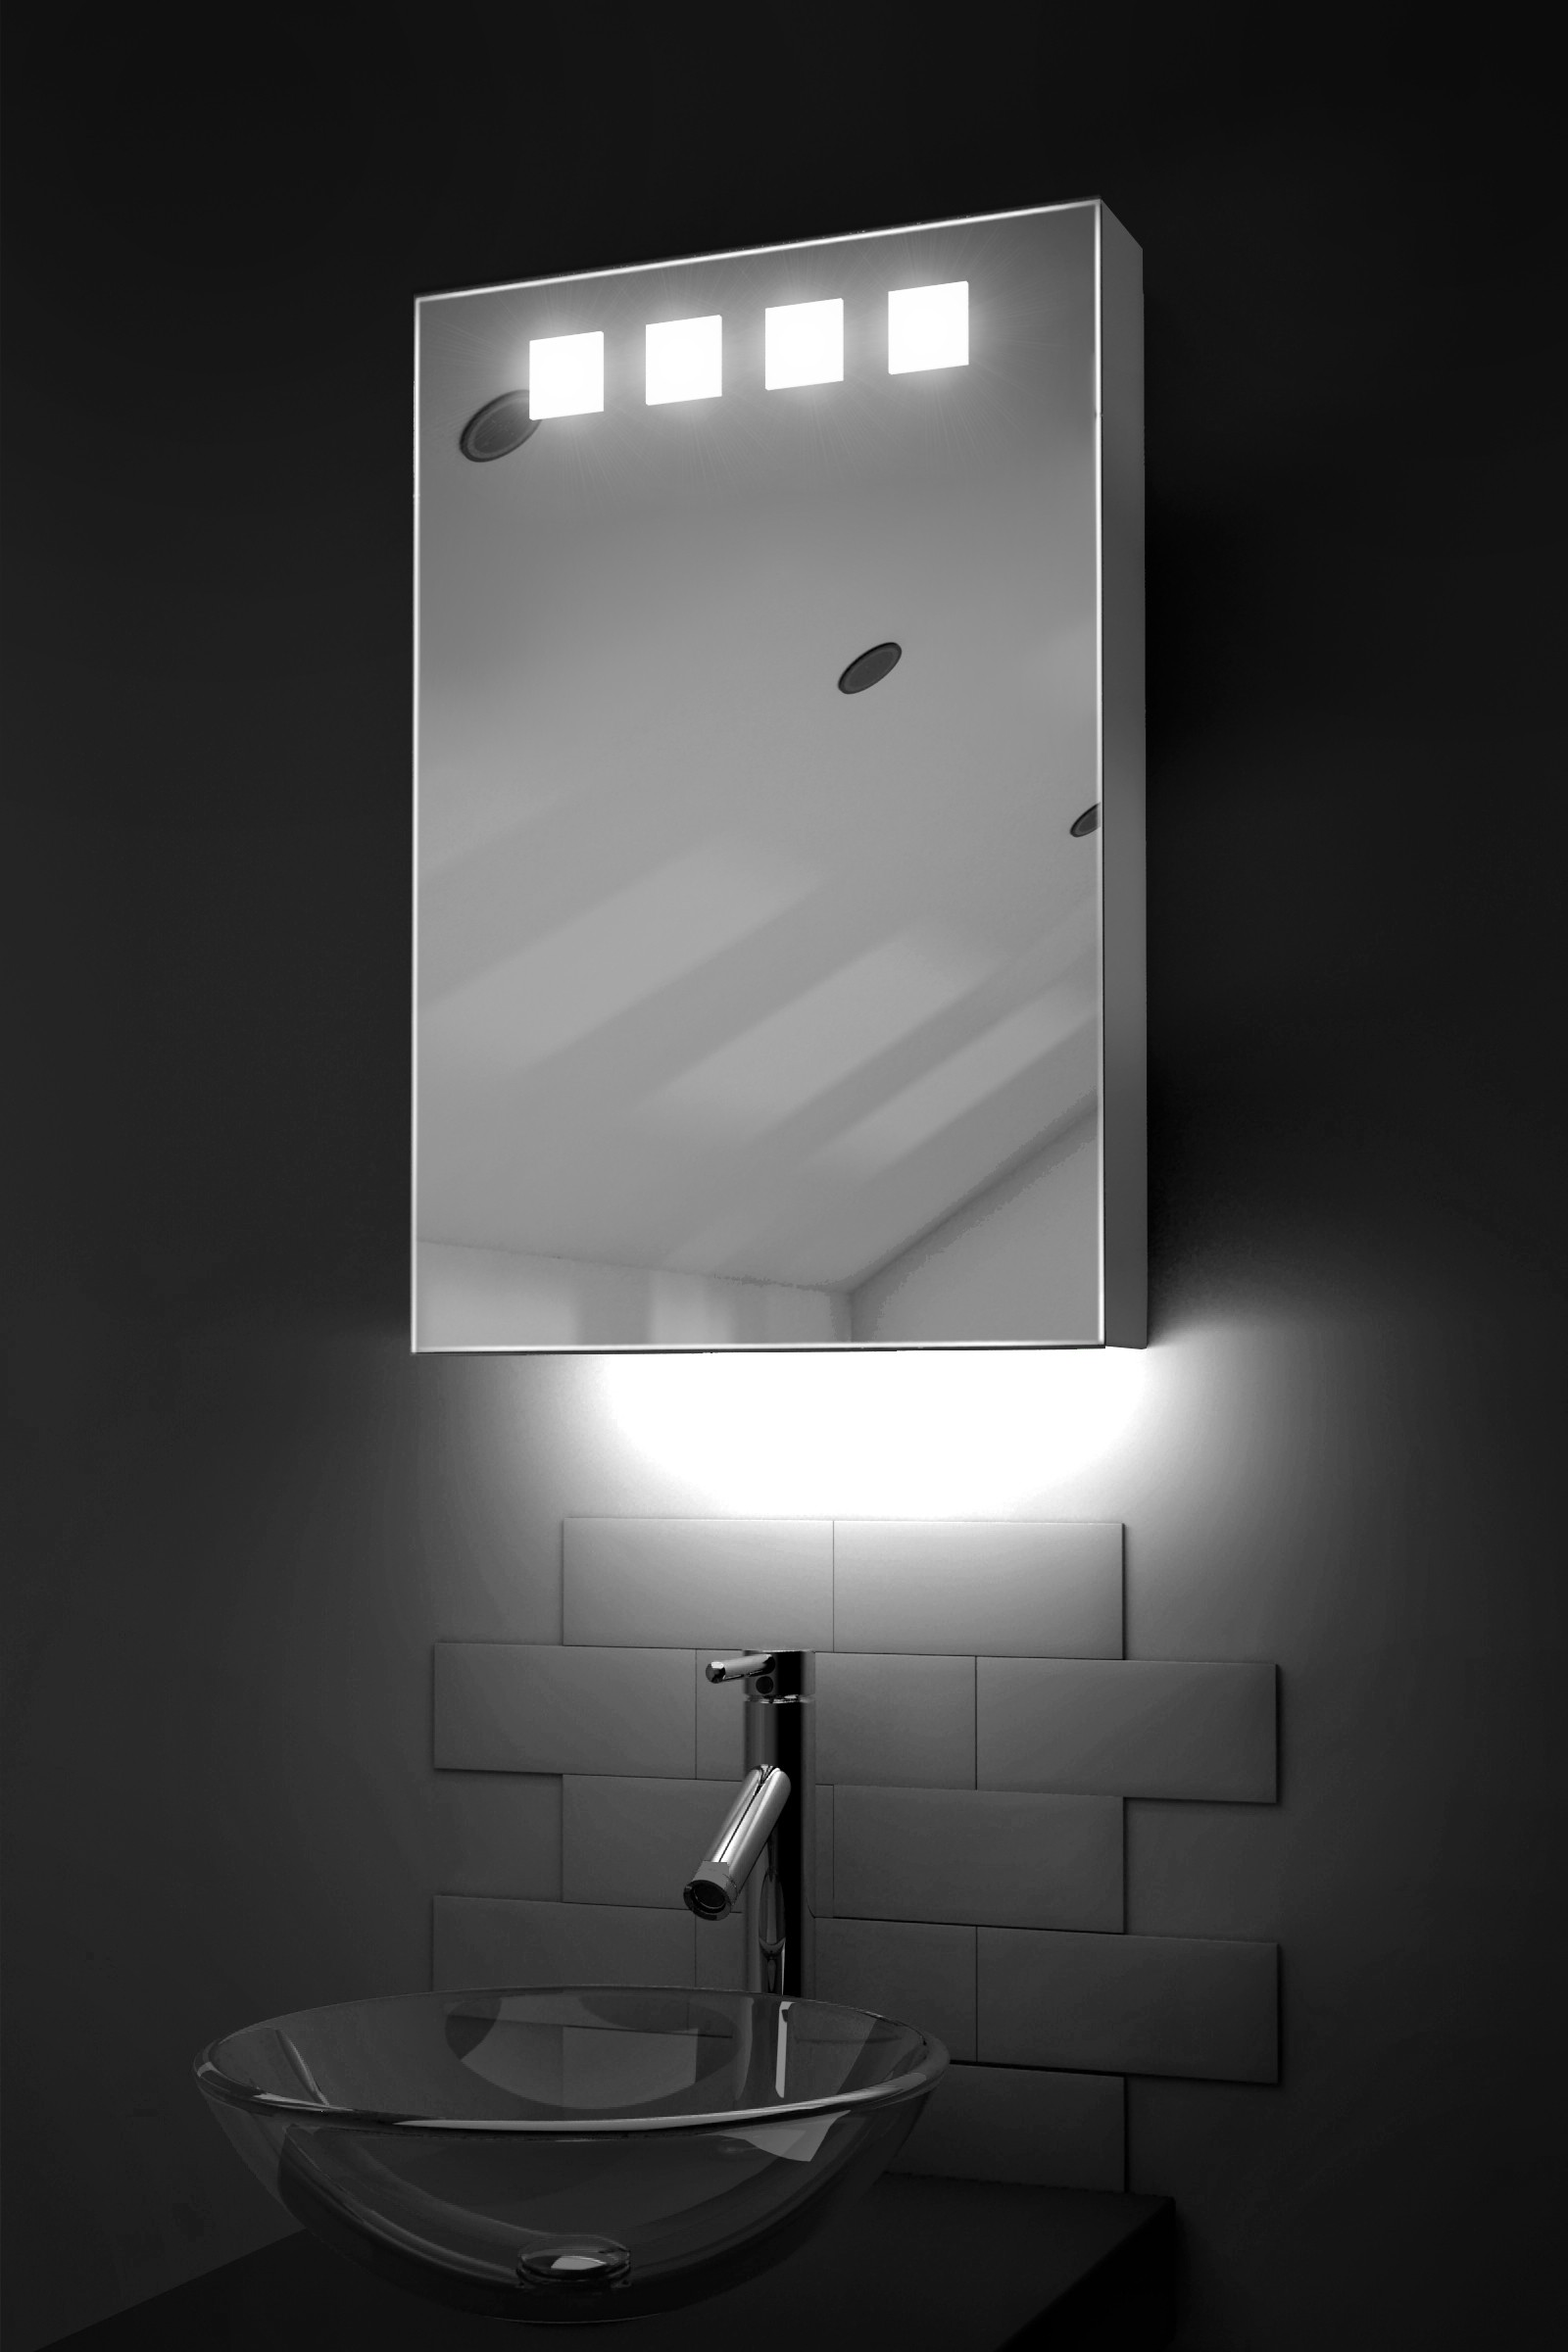 Badezimmerspiegel Theater Details About Ambient Bathroom Mirror Cabinet With Sensor Shaver Socket K254